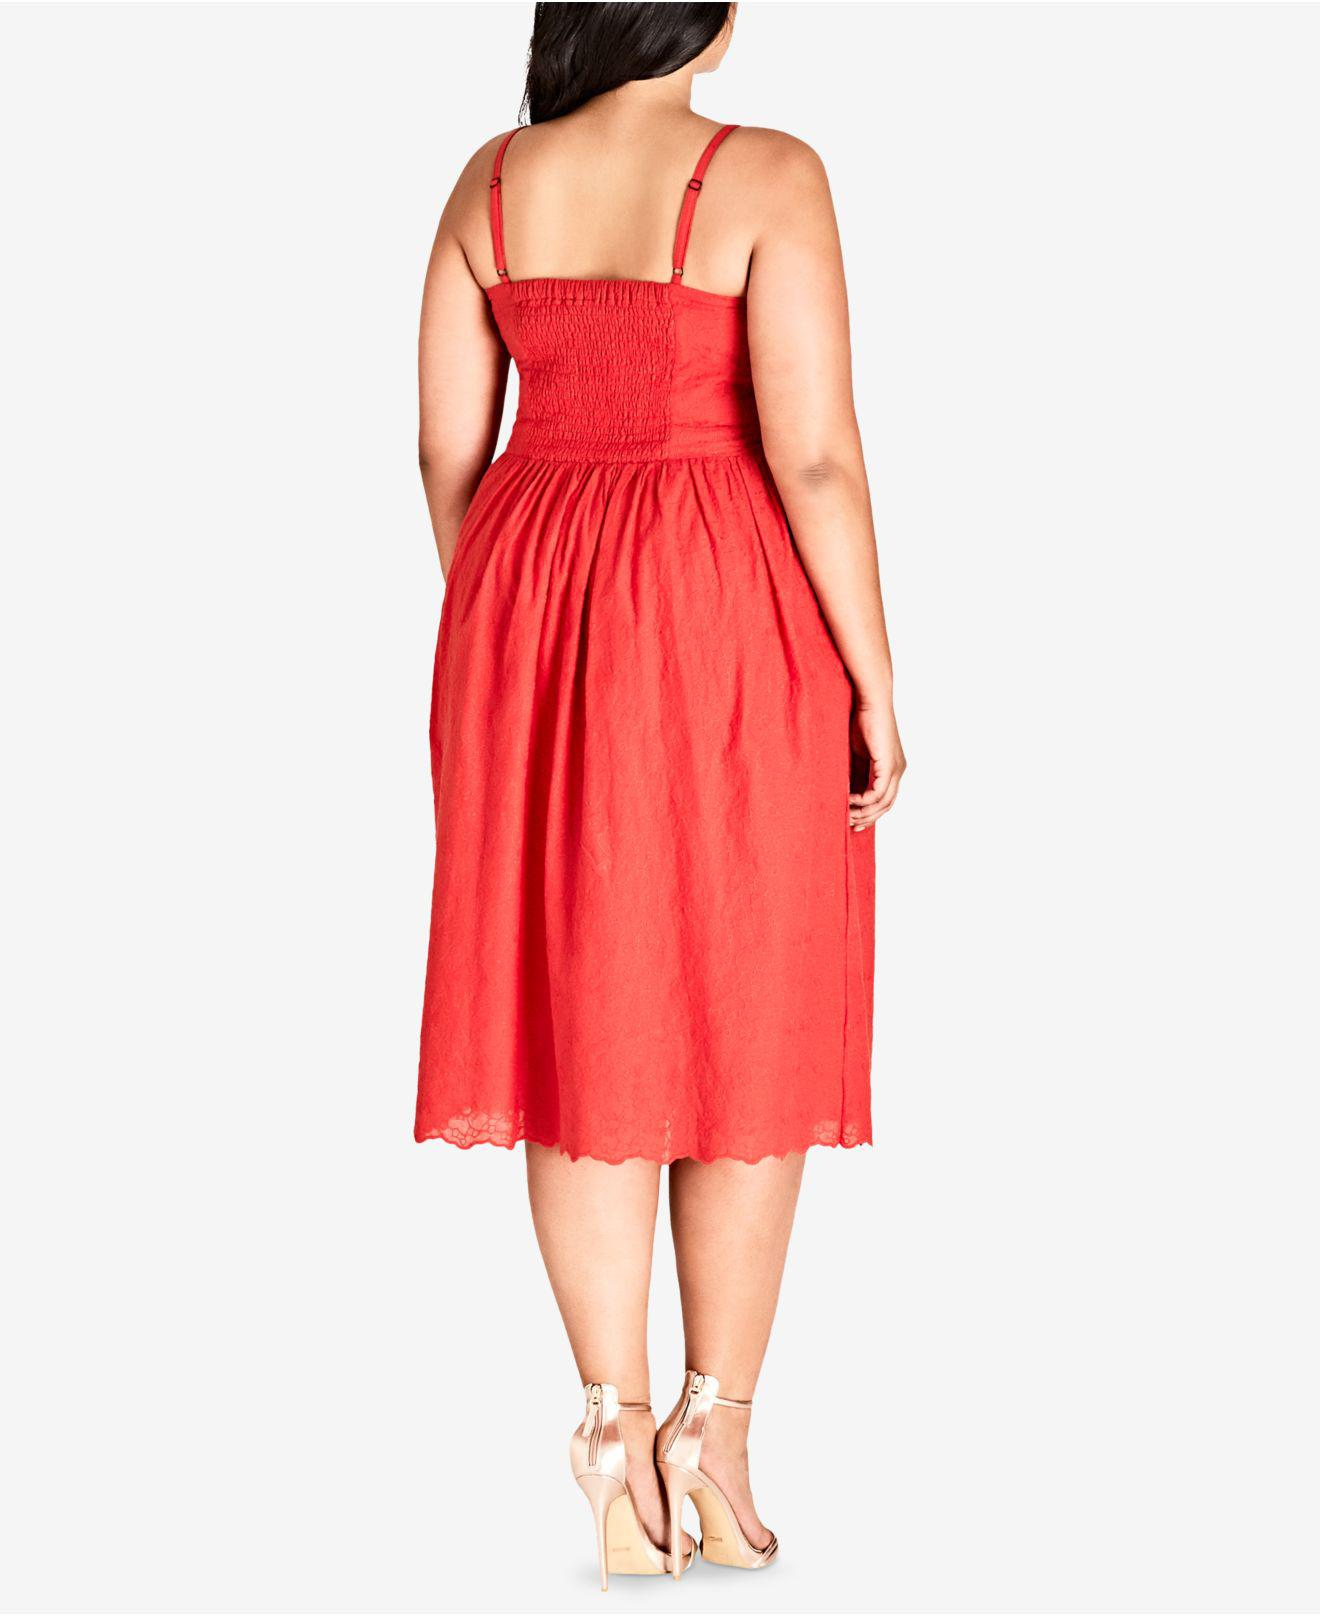 29b03ab3cf9 Lyst - City Chic Trendy Plus Size Cotton Embroidered Fit   Flare Dress in  Red